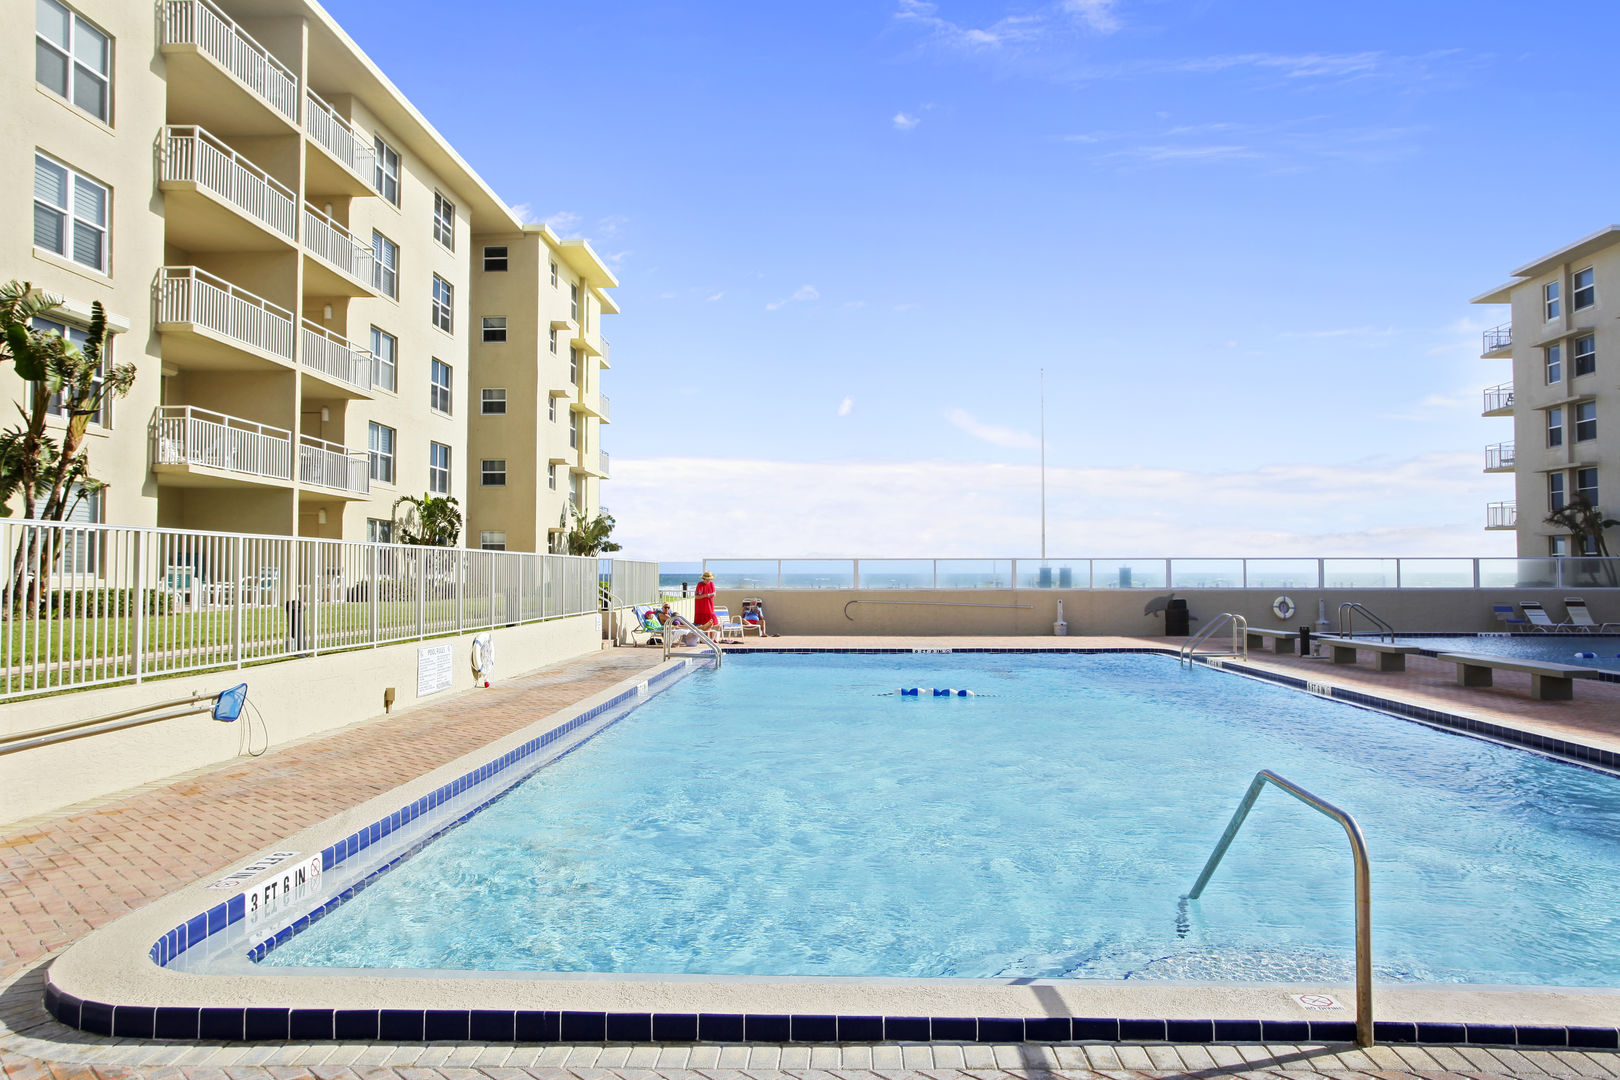 2 bedroom vacation rental with pool in New Smyrna Beach